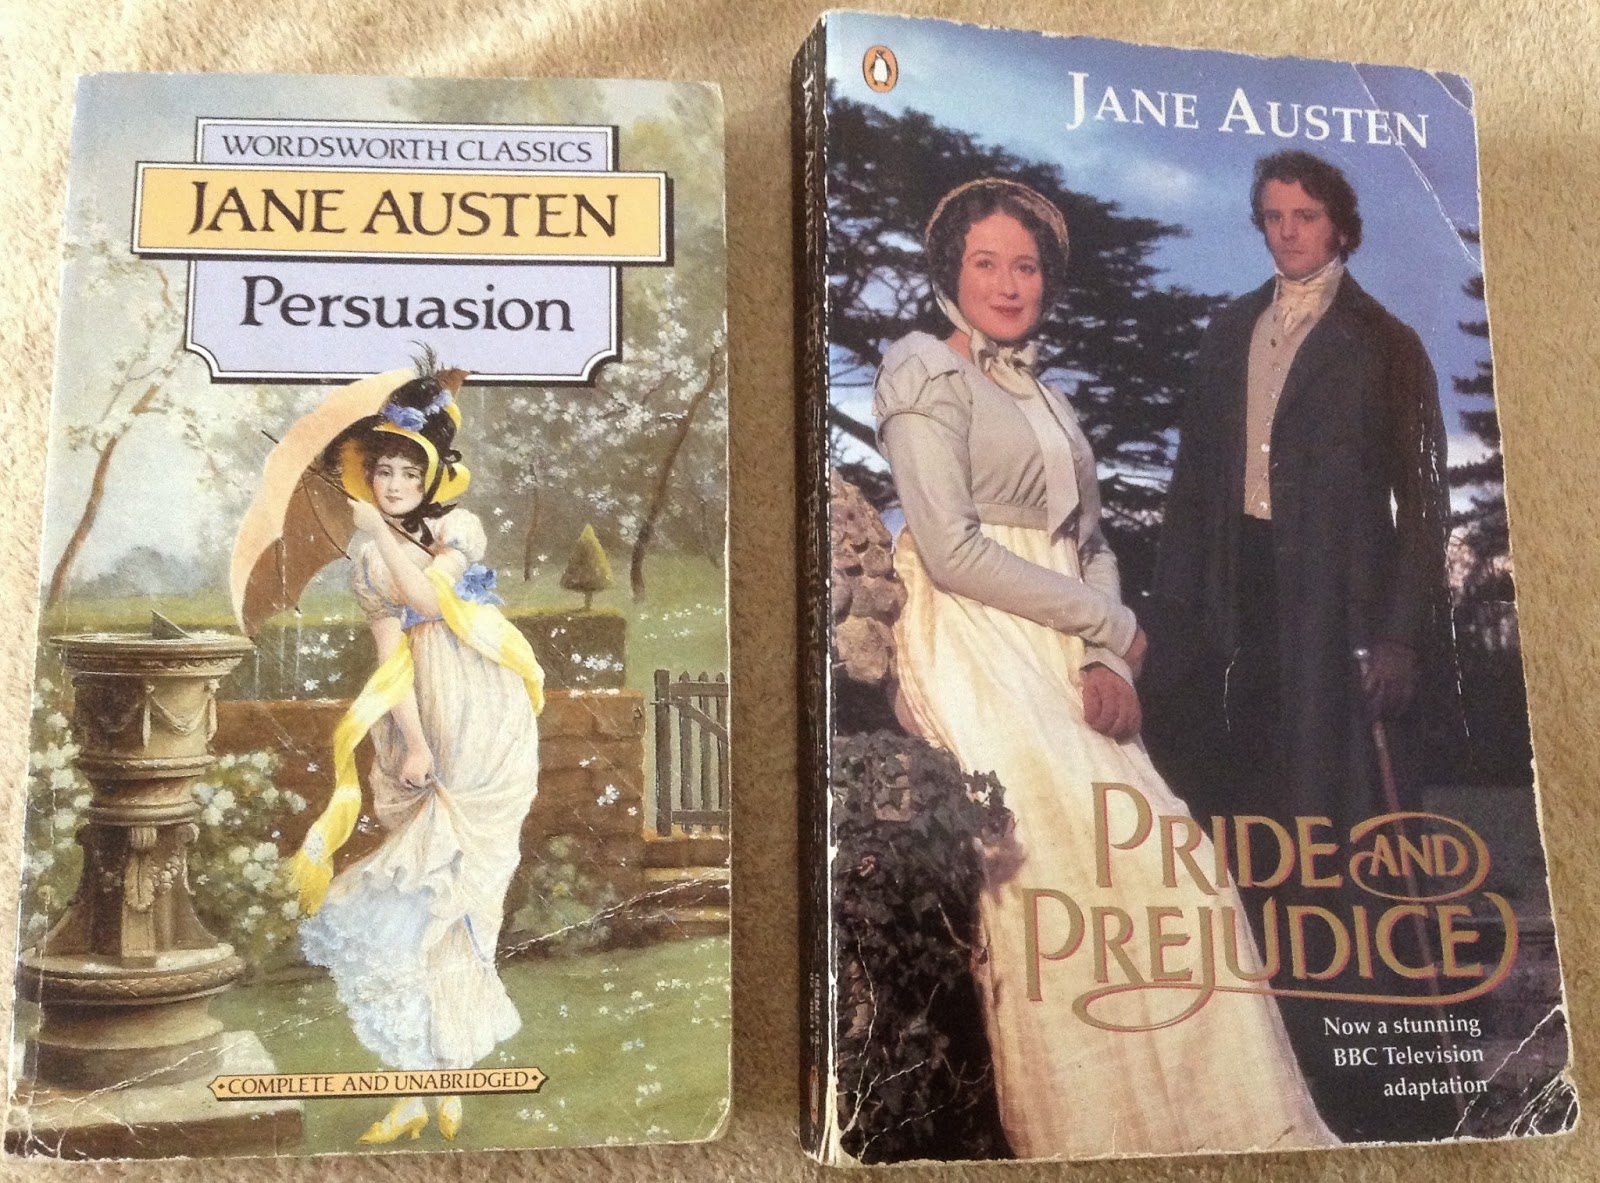 My old Austen covers